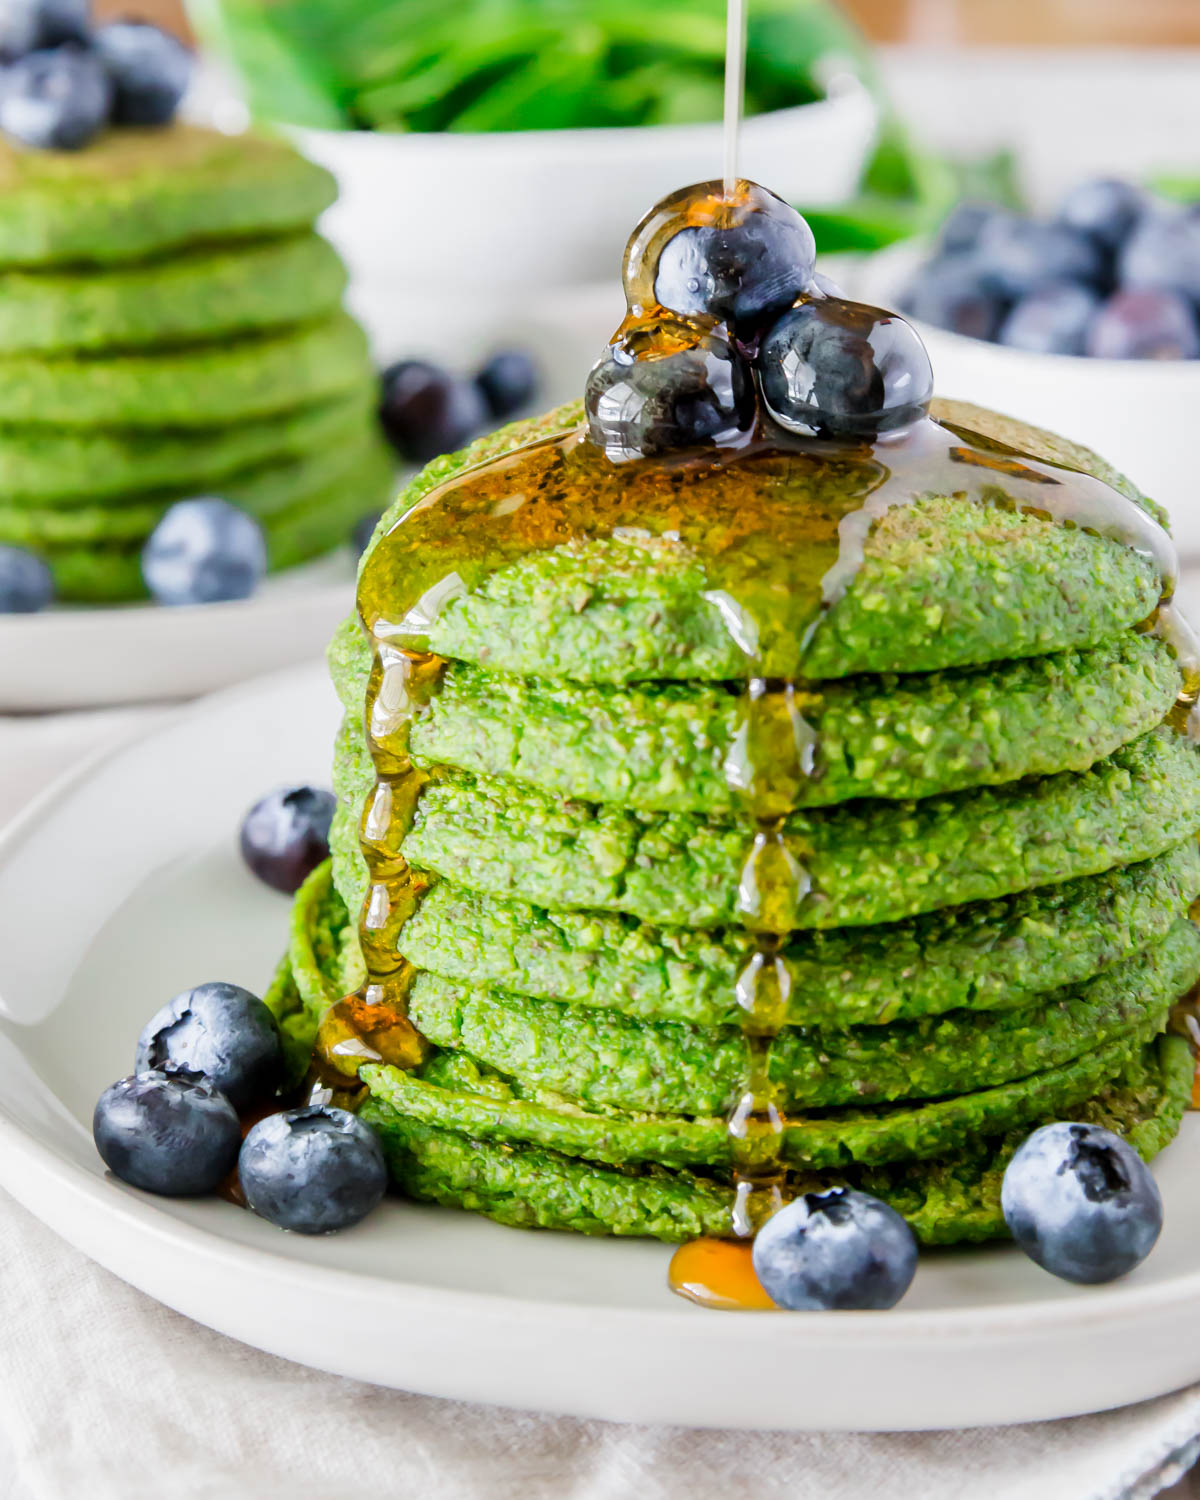 These spinach pancakes are a vivid green color without the use of any food coloring and a simple ingredient list! The perfect St. Patrick's Day breakfast recipe that's also gluten-free & vegan.